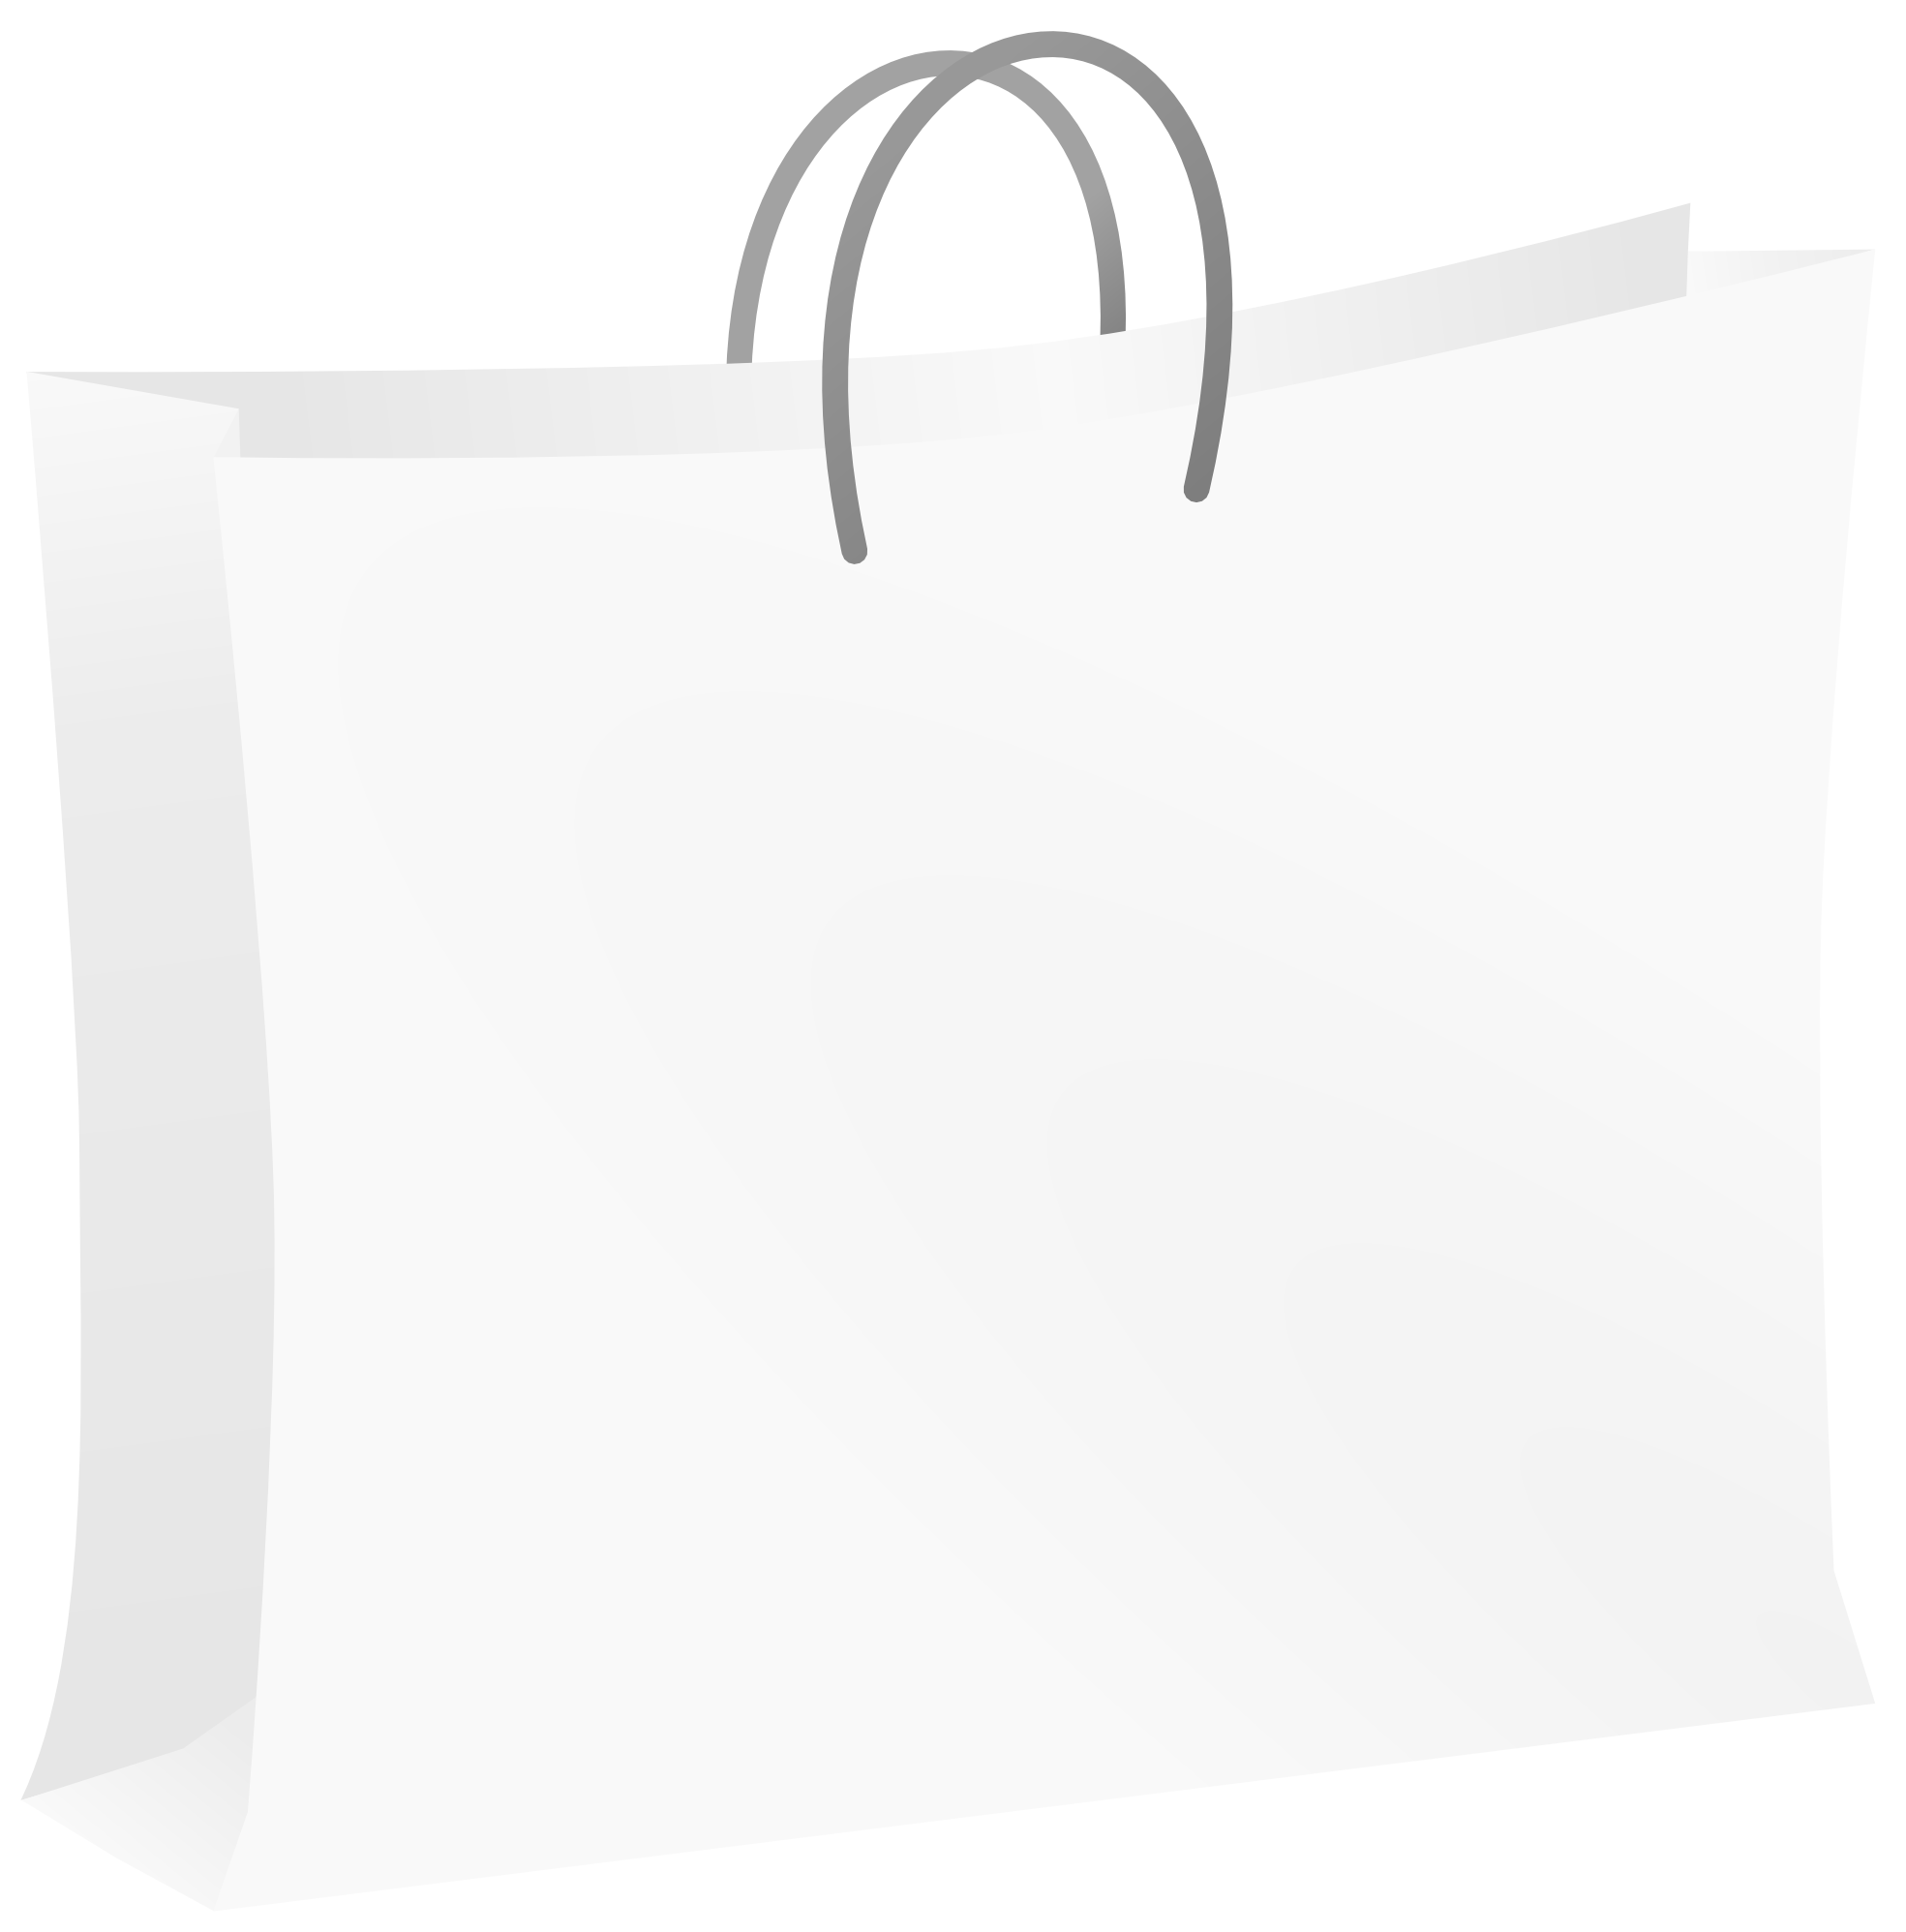 1969x1996 Shopping Bags Shopping Bag Black And White Clipart